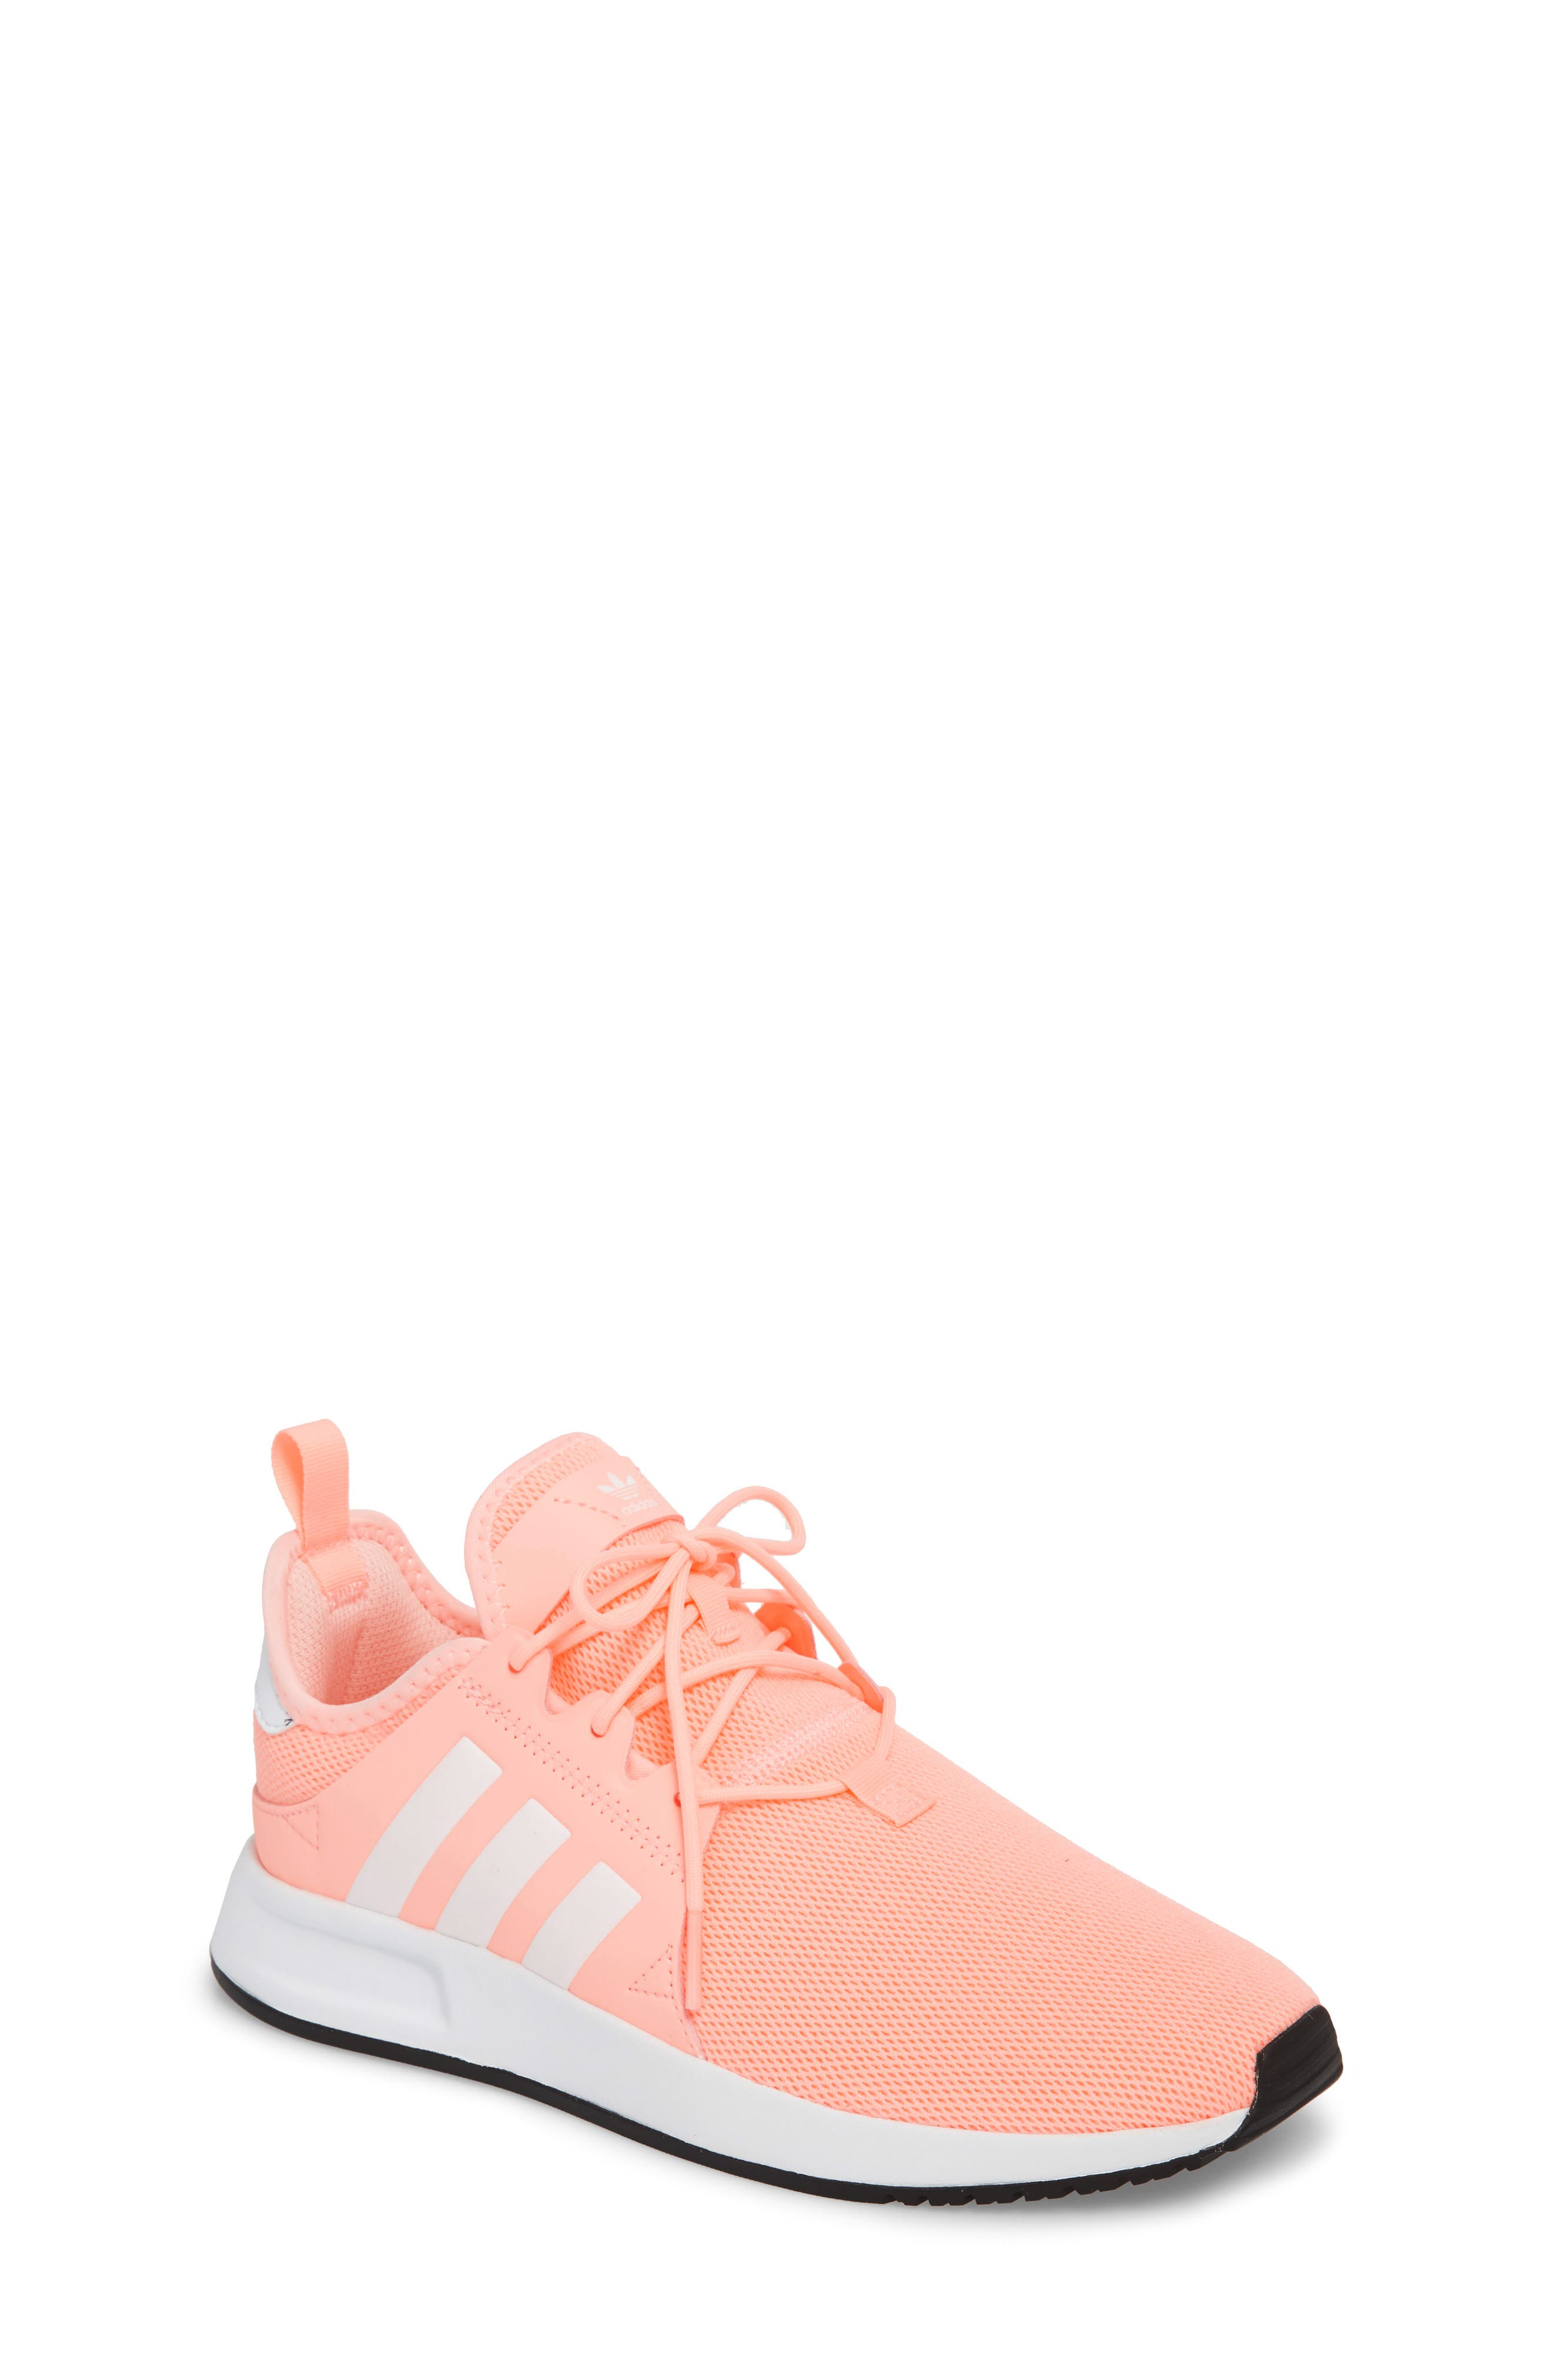 X_PLR Sneaker,                         Main,                         color, Clear Orange/ White